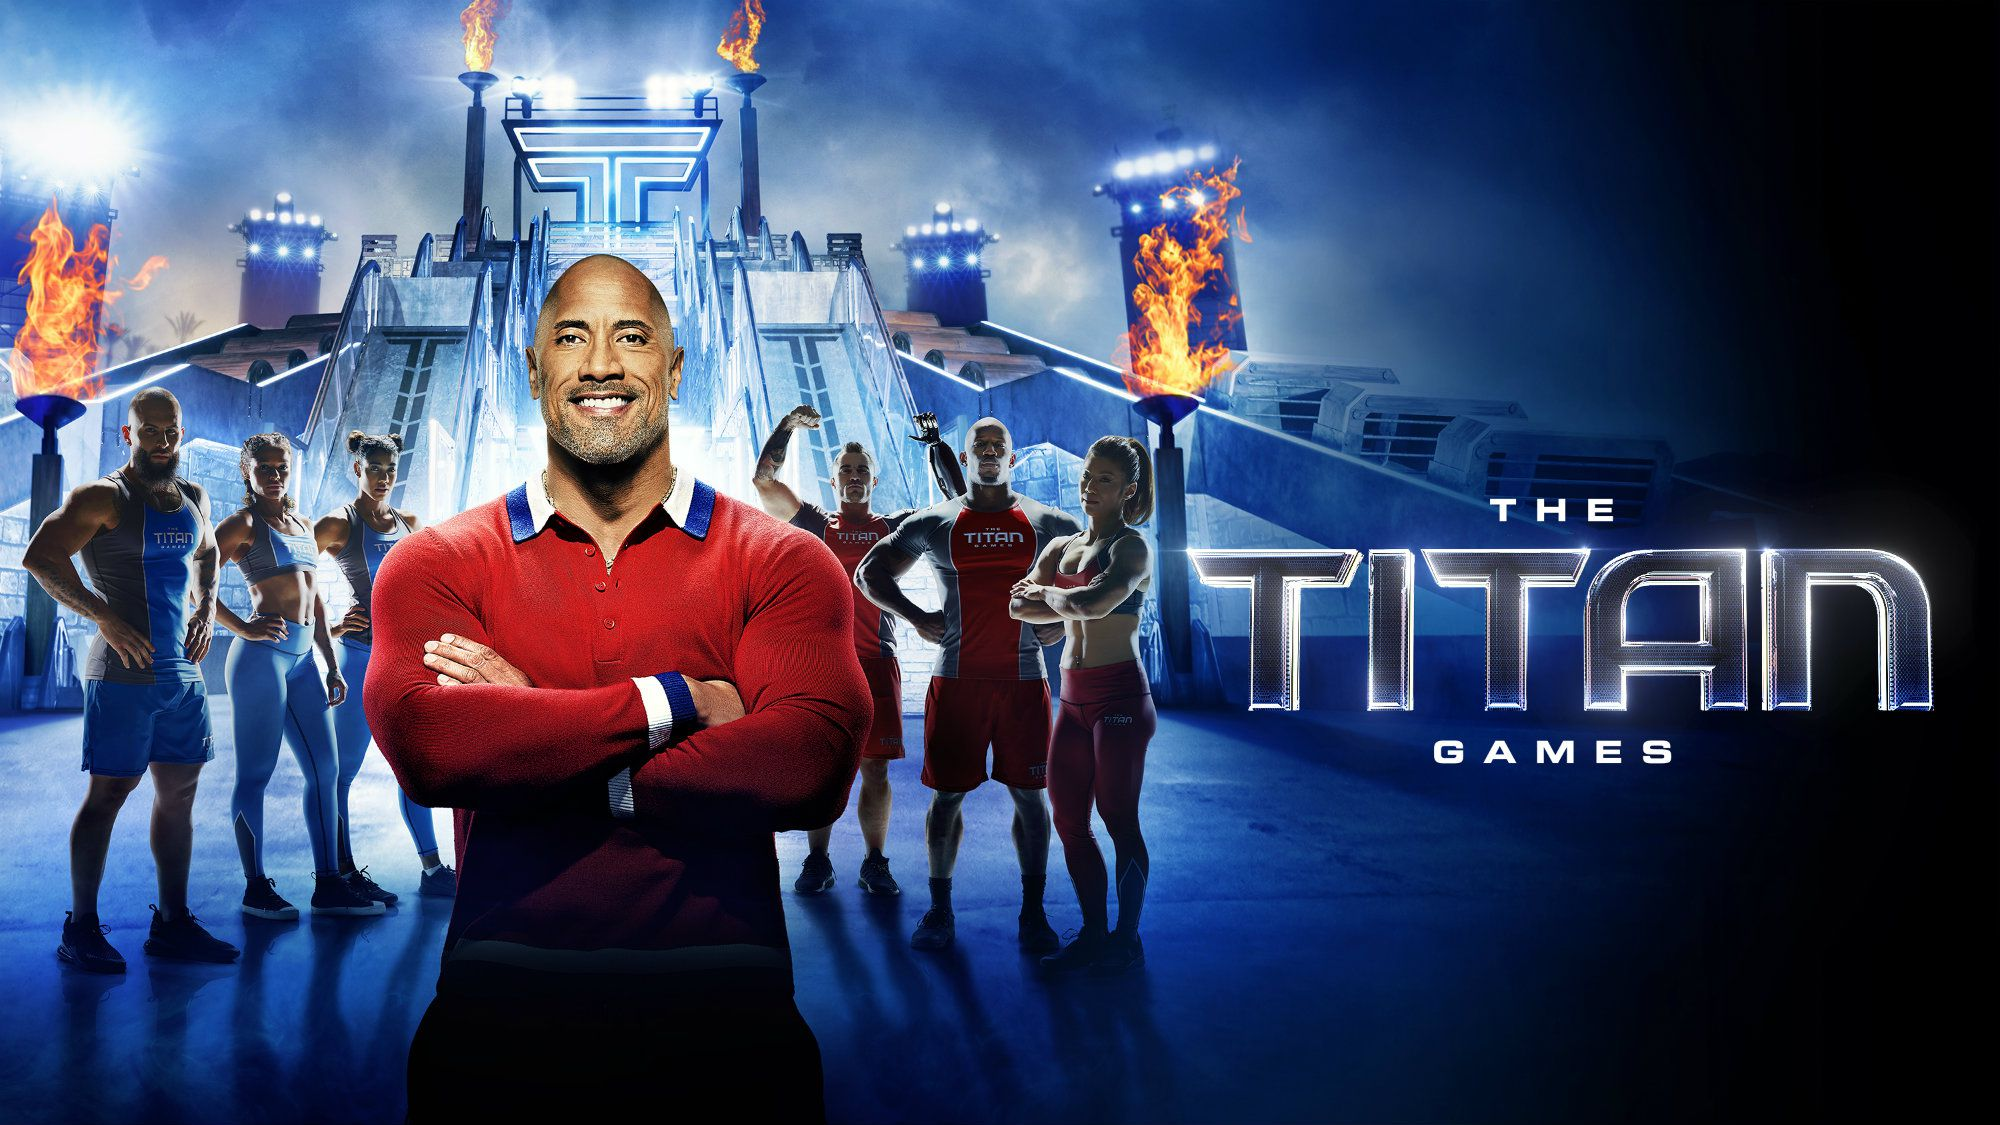 <a  style='text-decoration: none; font-weight:bold;' href=http://redwhitecommunication.com:80/index.php/_home/news/id/MTU5.php>Dwayne Johnson Membawakan Acara Televisi Atletik Baru 'The Titan Games' di Saluran FOX </a>